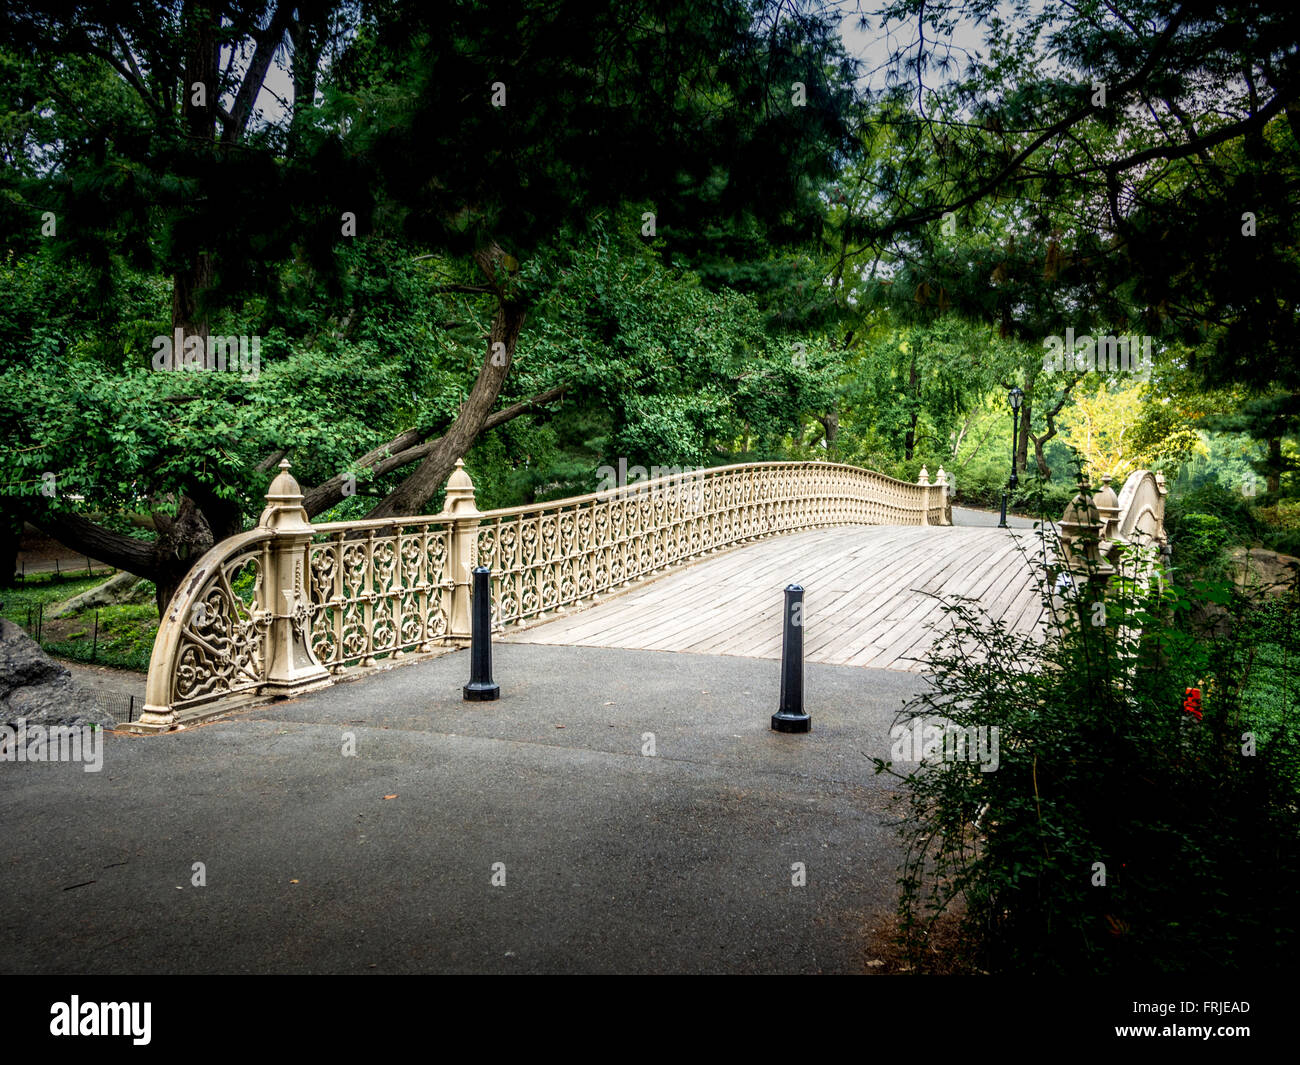 Pine Bank Arch cast-iron bridge, Central Park, West Side at 62nd Street. USA - Stock Image